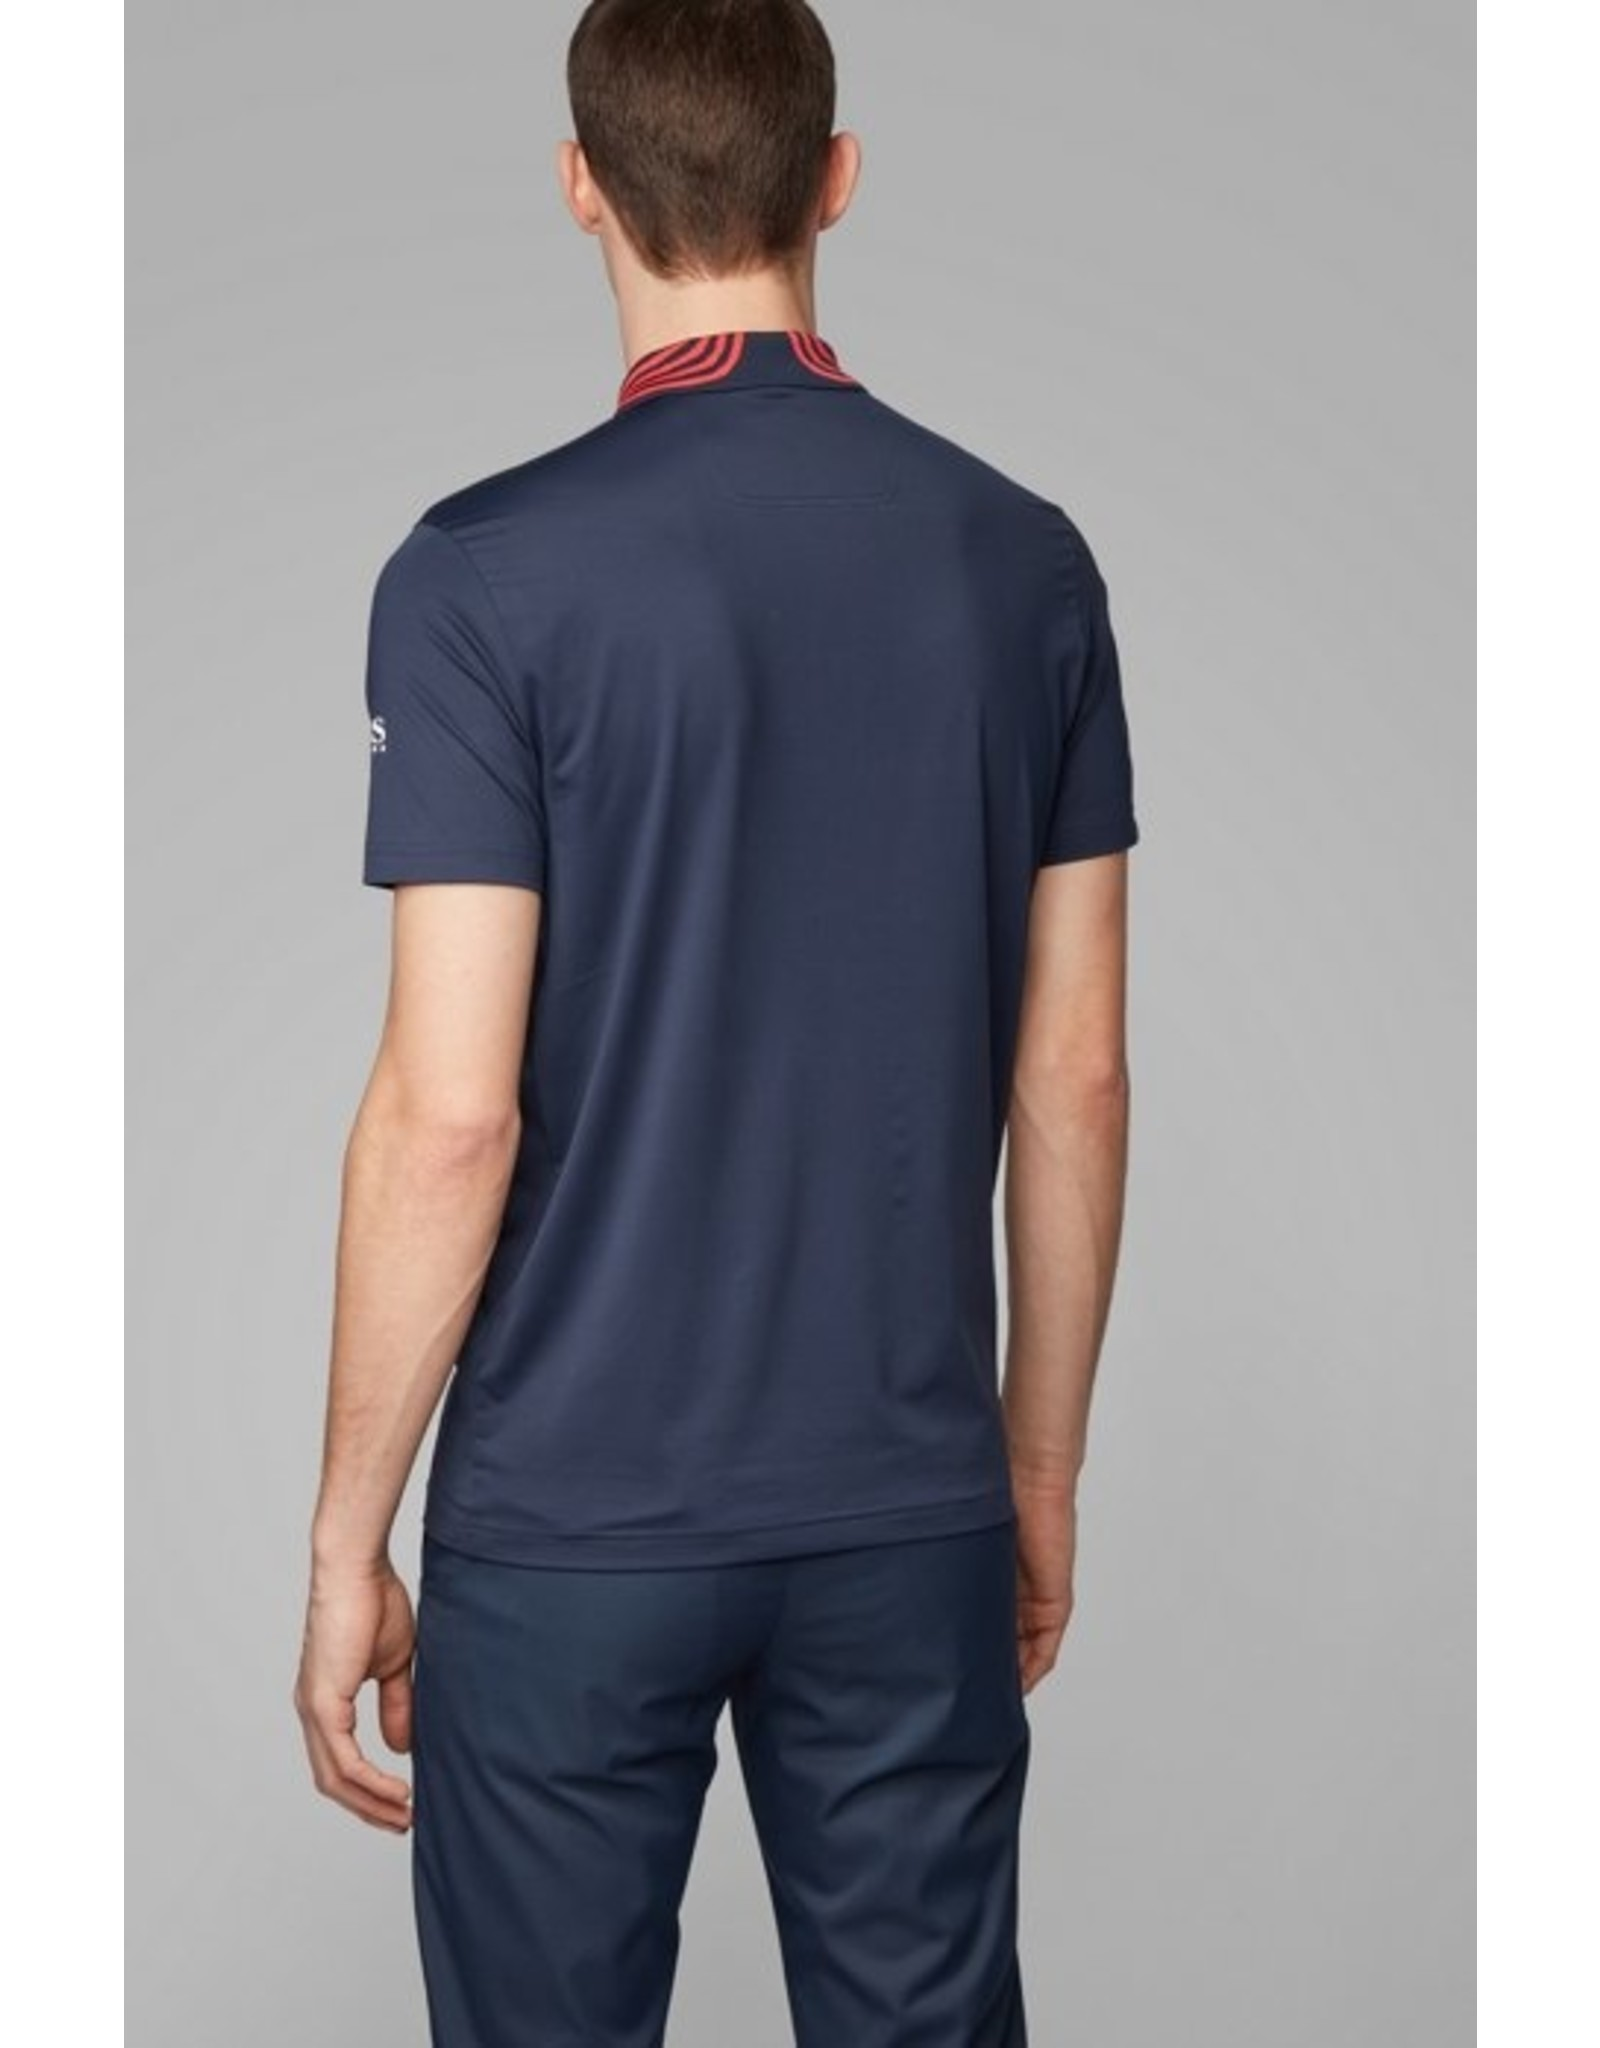 BOSS ATHLEISURE BOSS ATHLEISURE PAULTECH SL